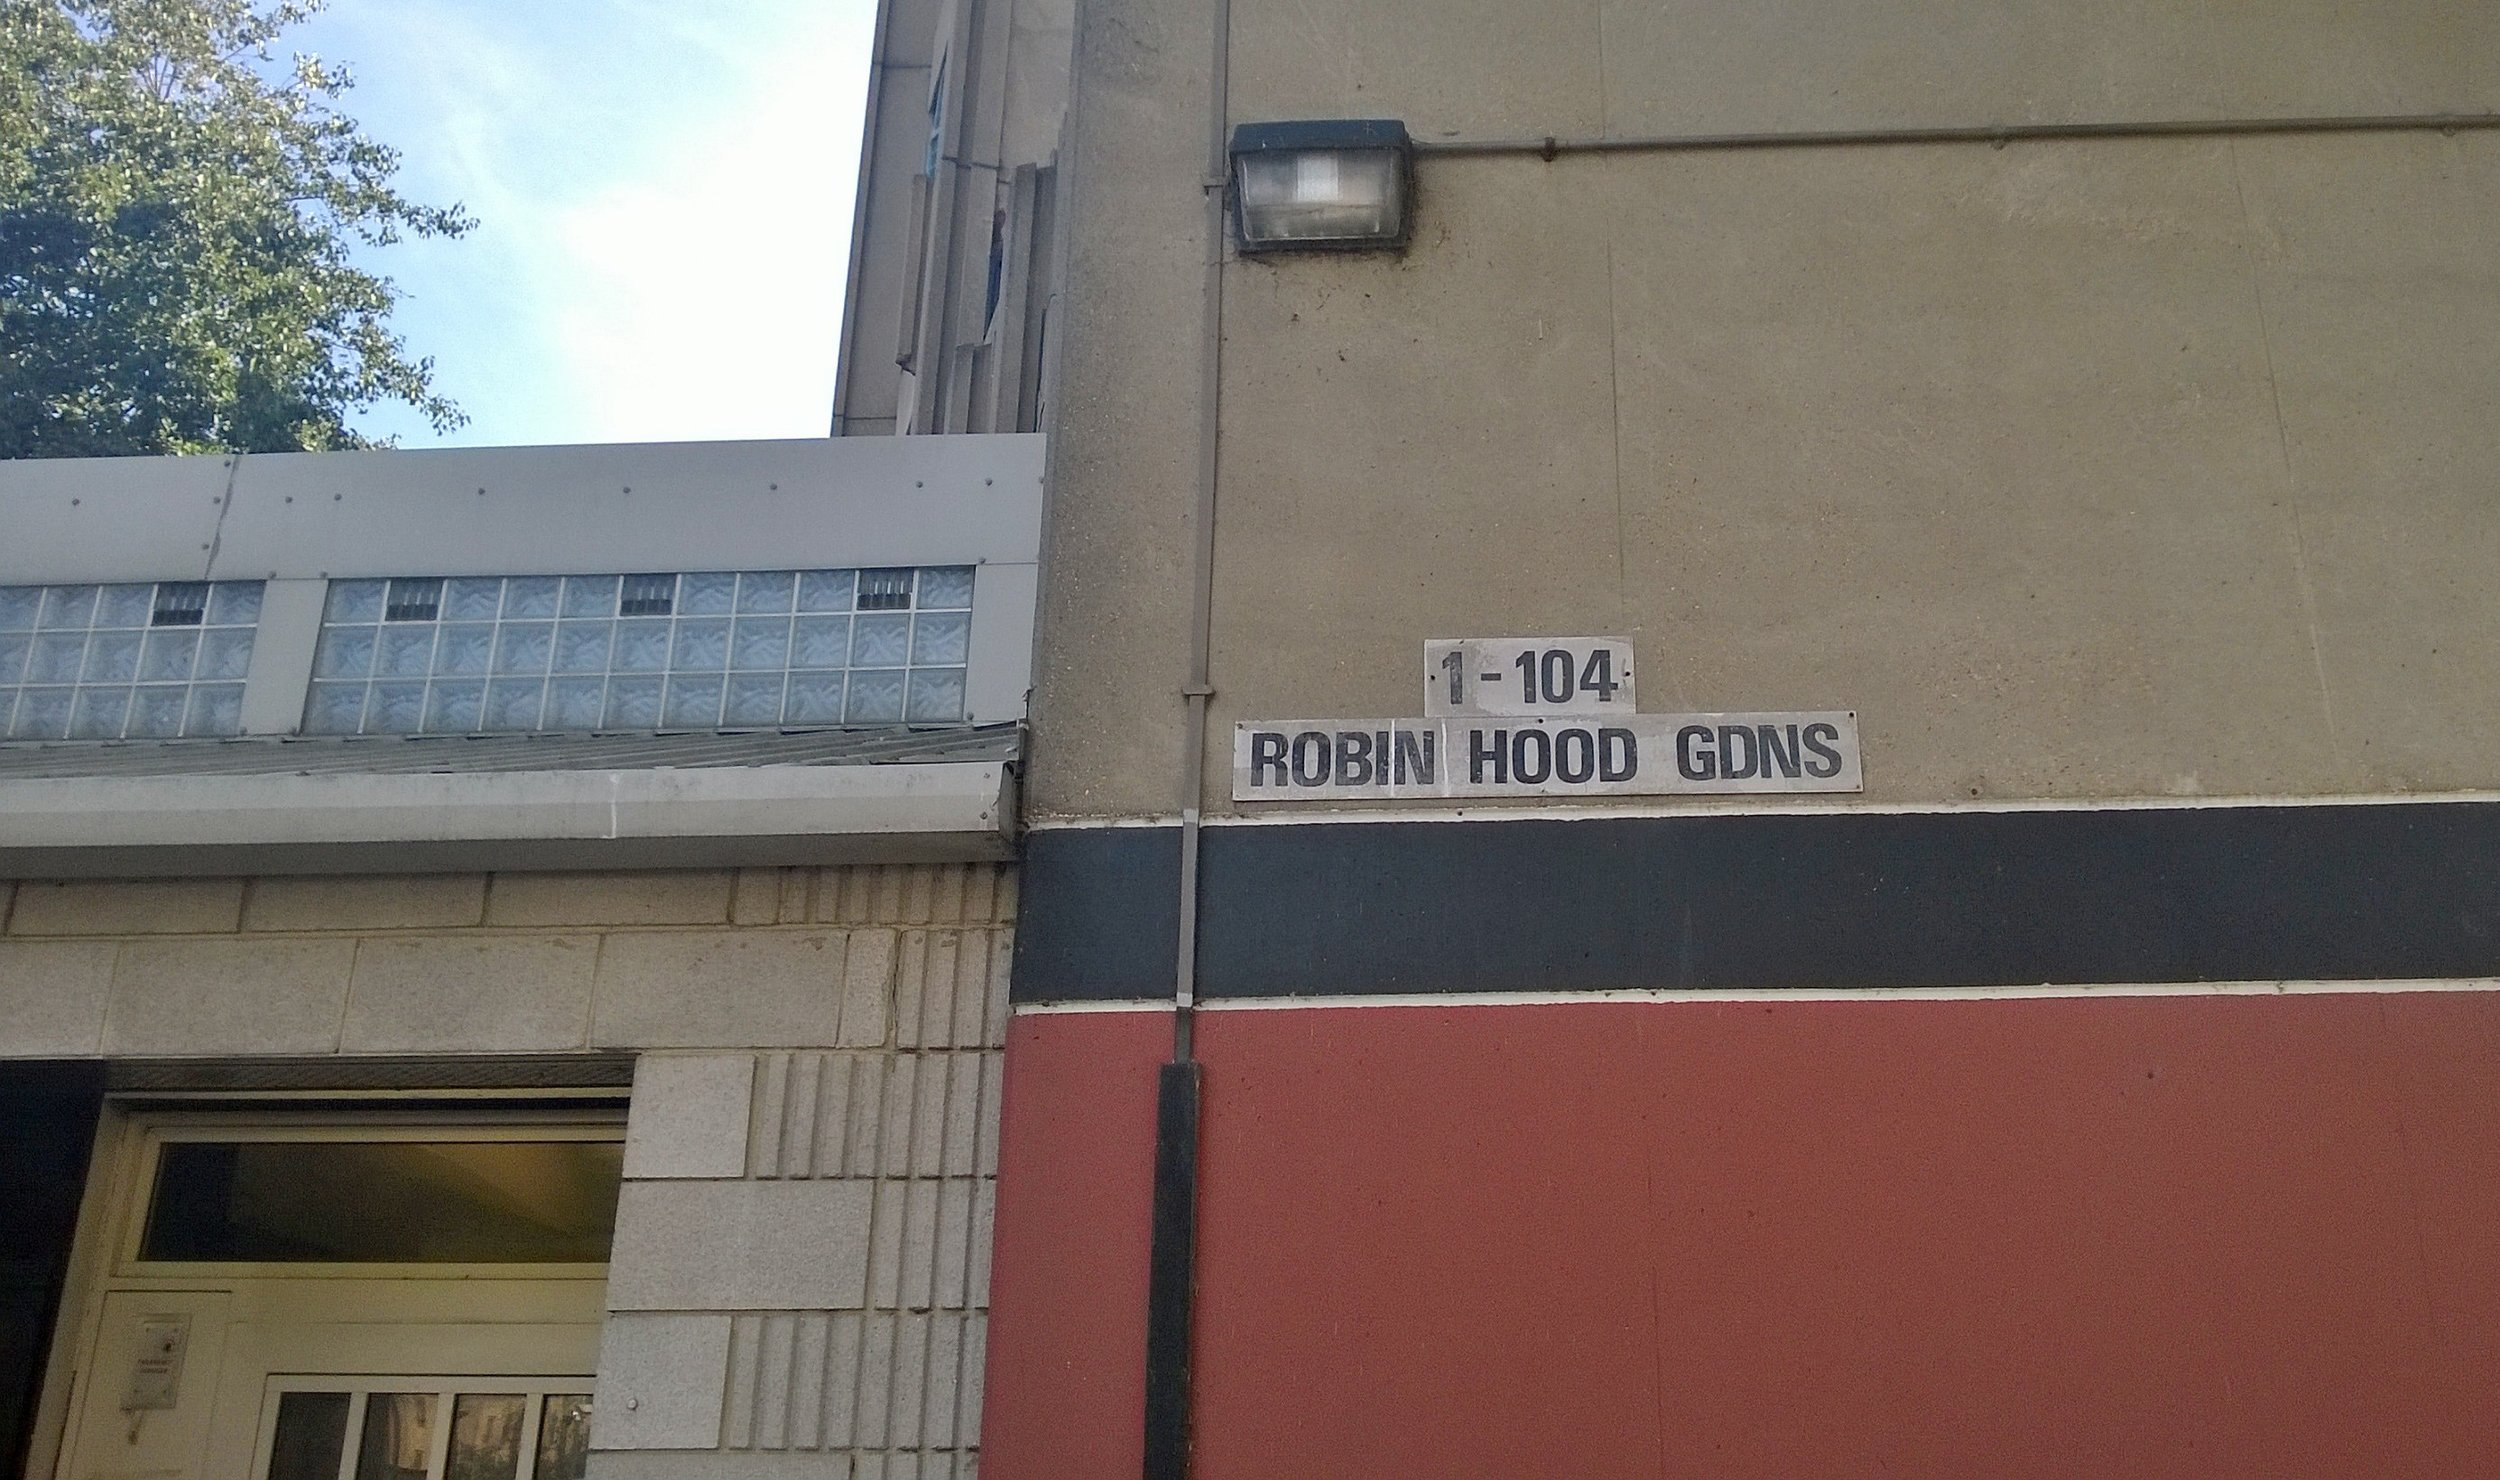 Entrance to first block at Robin Hood Gardens.